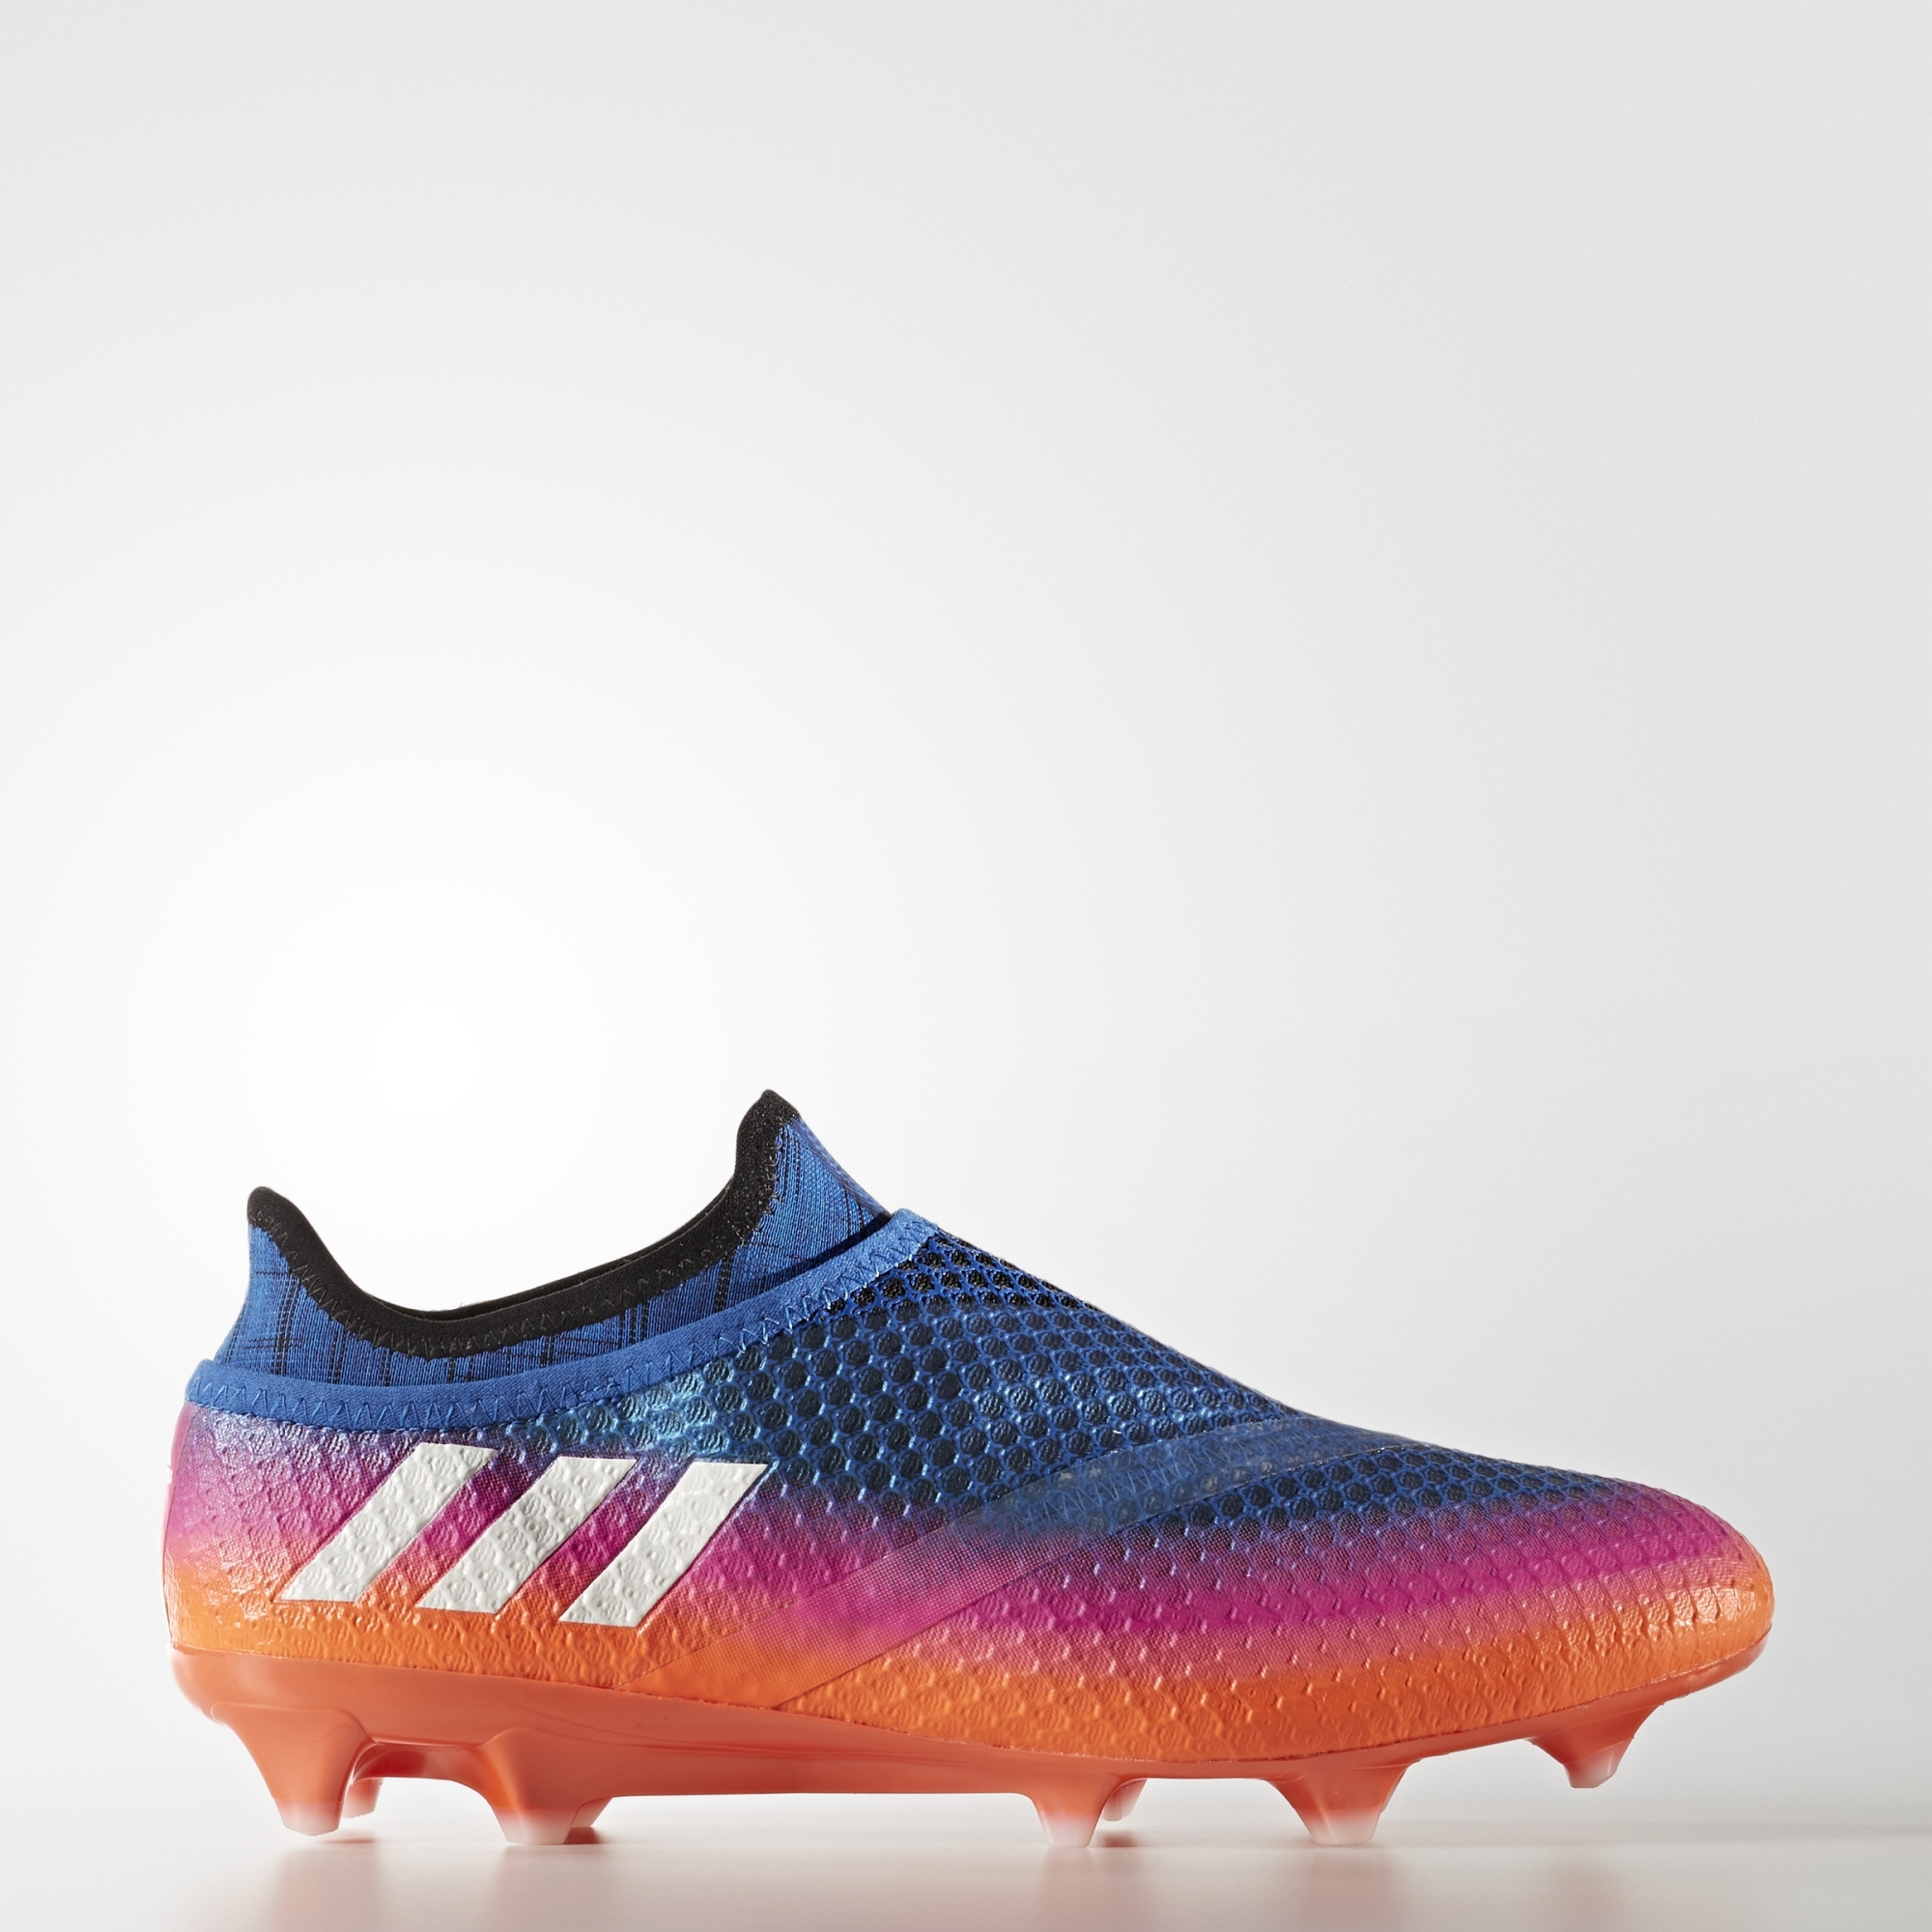 buy online e356c 99ed4 ... with the PUREAGILITY heel liningMove with untouchable speed and agility  on firm ground (dry natural grass) with the Messi FG stud alignmentImported